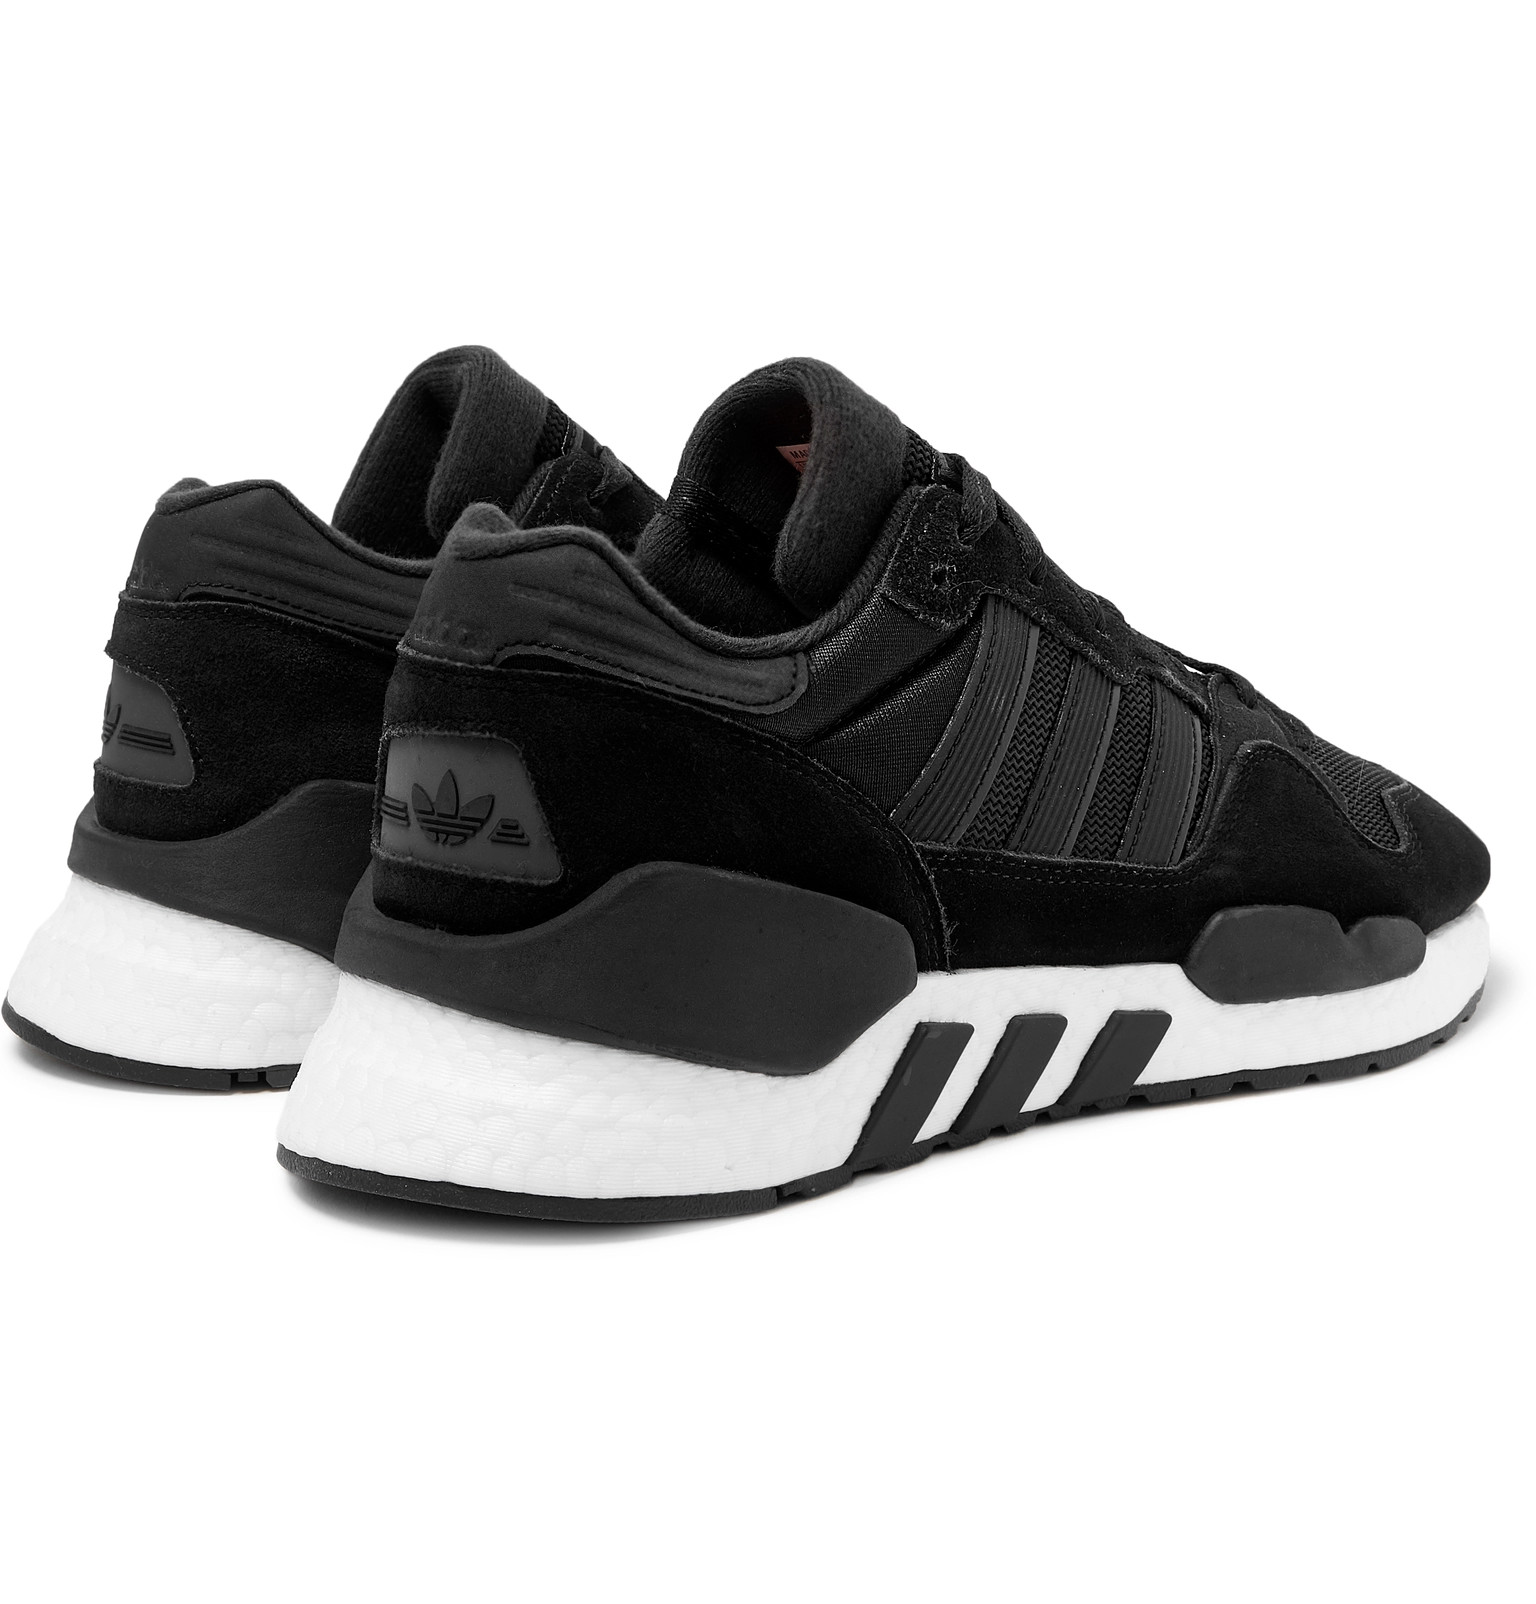 the best attitude 651fc 9a280 adidas OriginalsZX 930 x EQT Mesh and Suede Sneakers